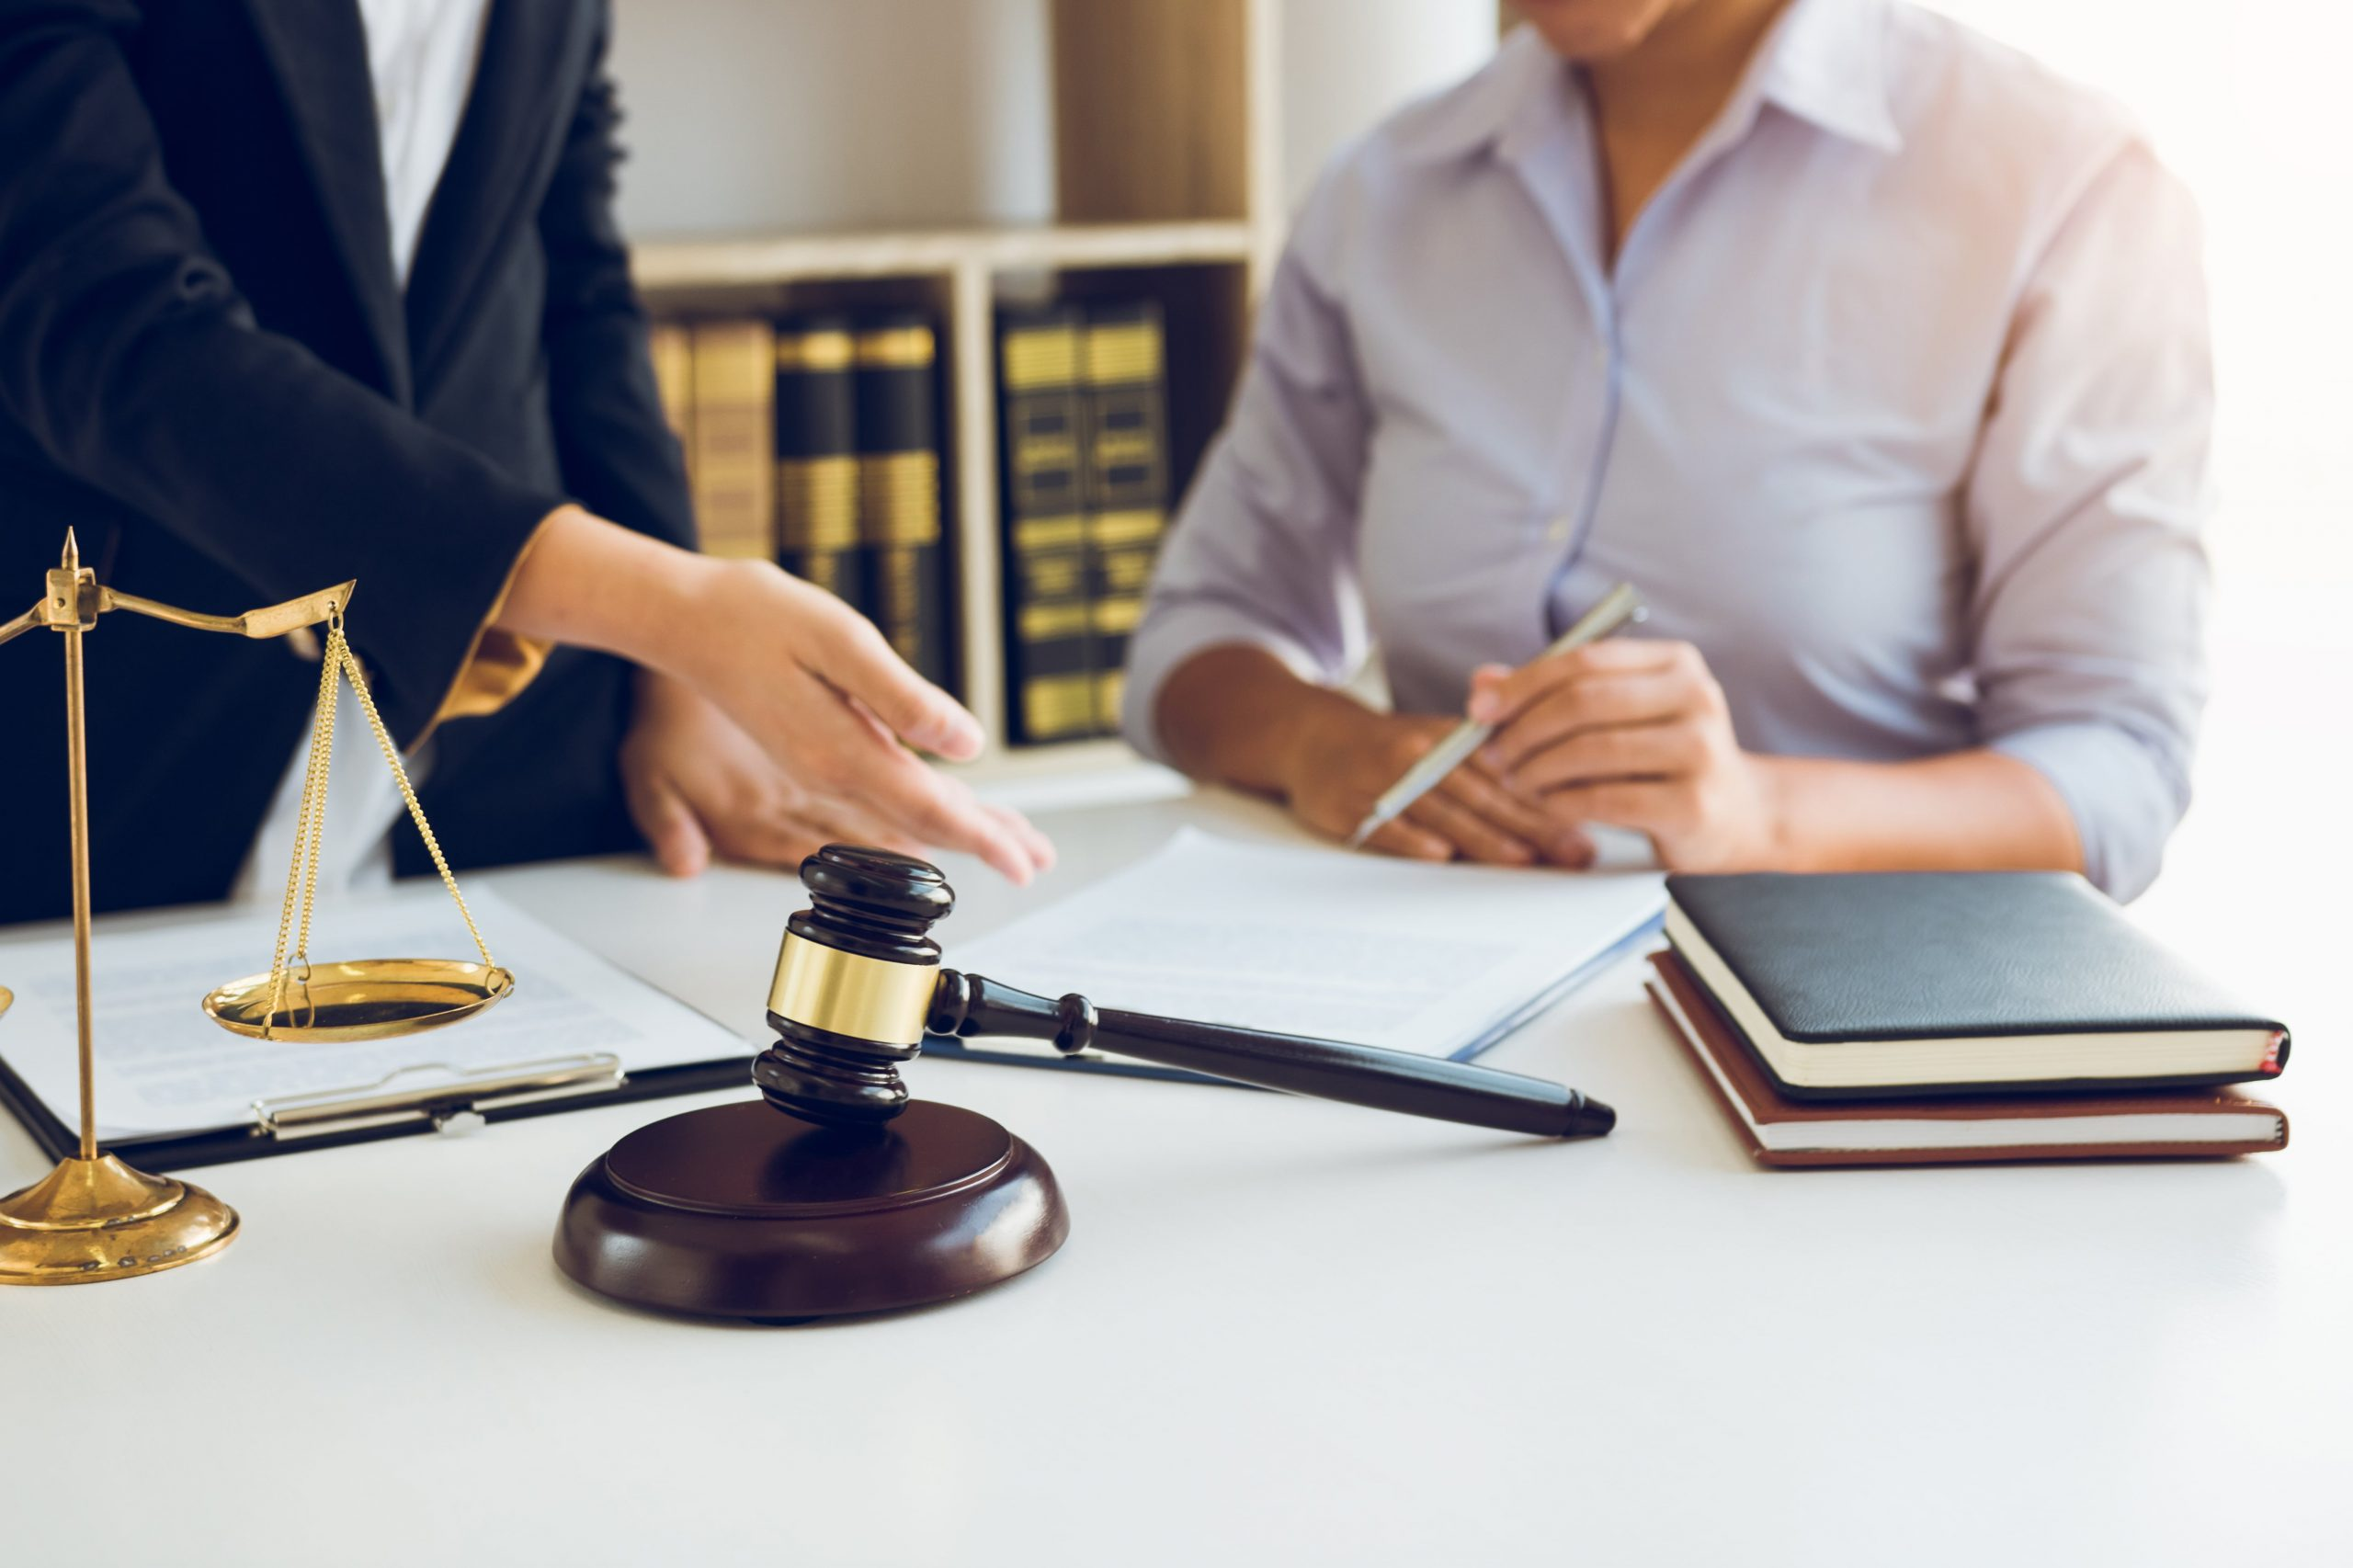 lawyer-explained-to-the-client-about-the-legal-iss-XHH8L2X